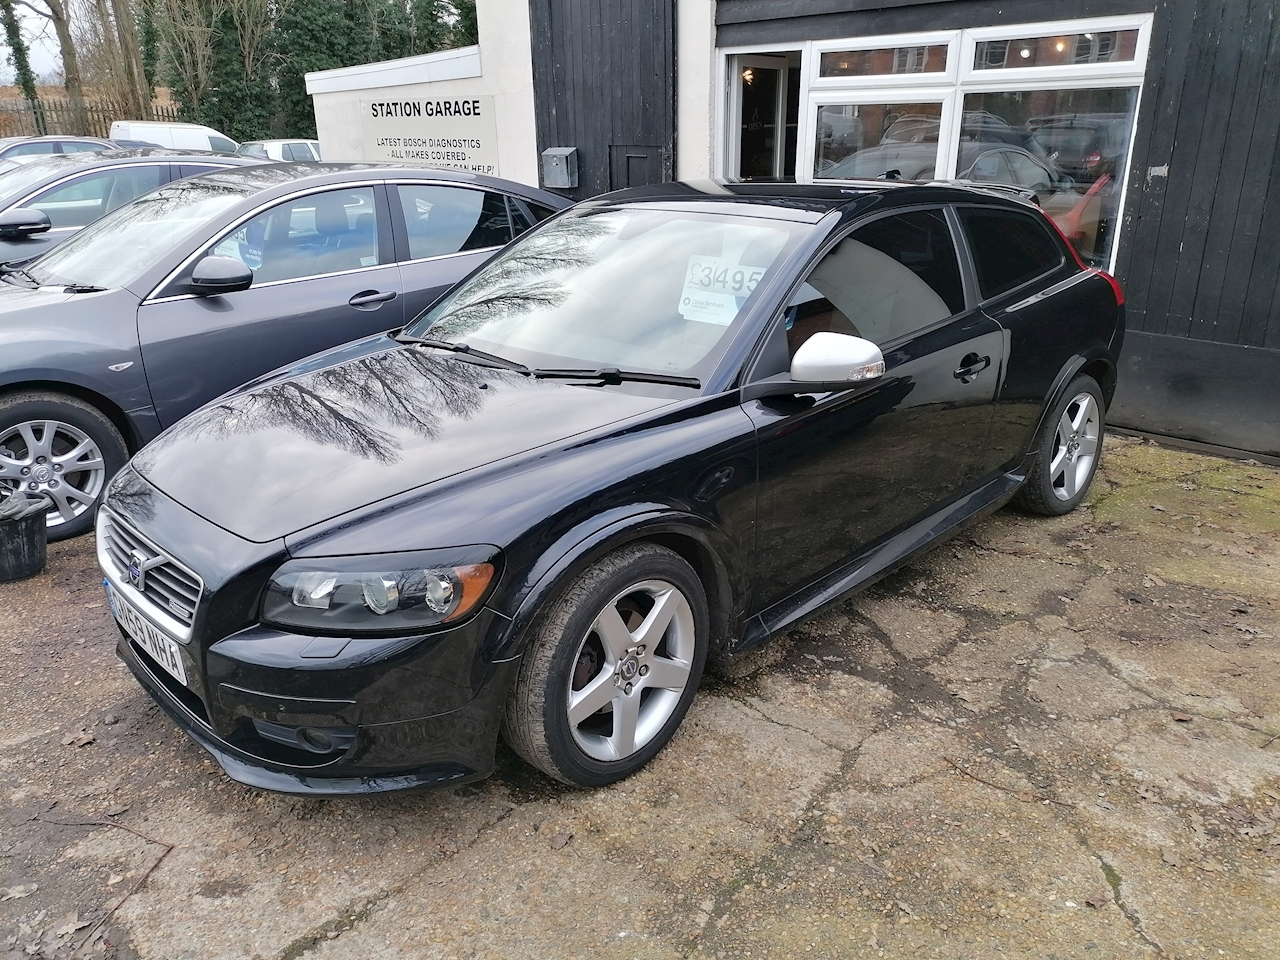 C30 D Se 1.6 3dr Coupe Manual Diesel